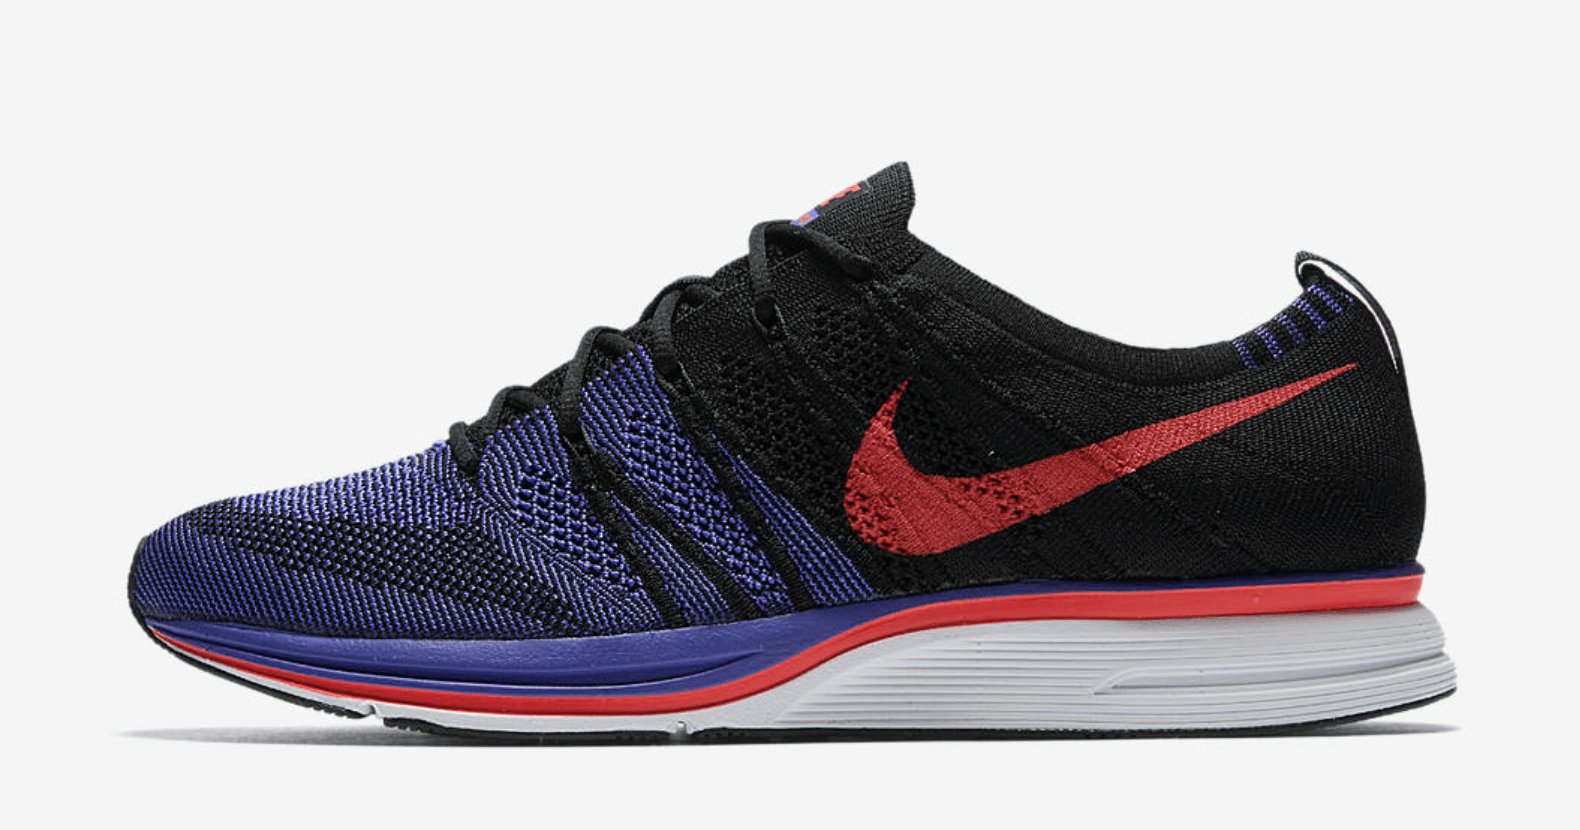 635d41a1861ee ... get nike flyknit trainer release date march 15 2018. price 150. color  black siren